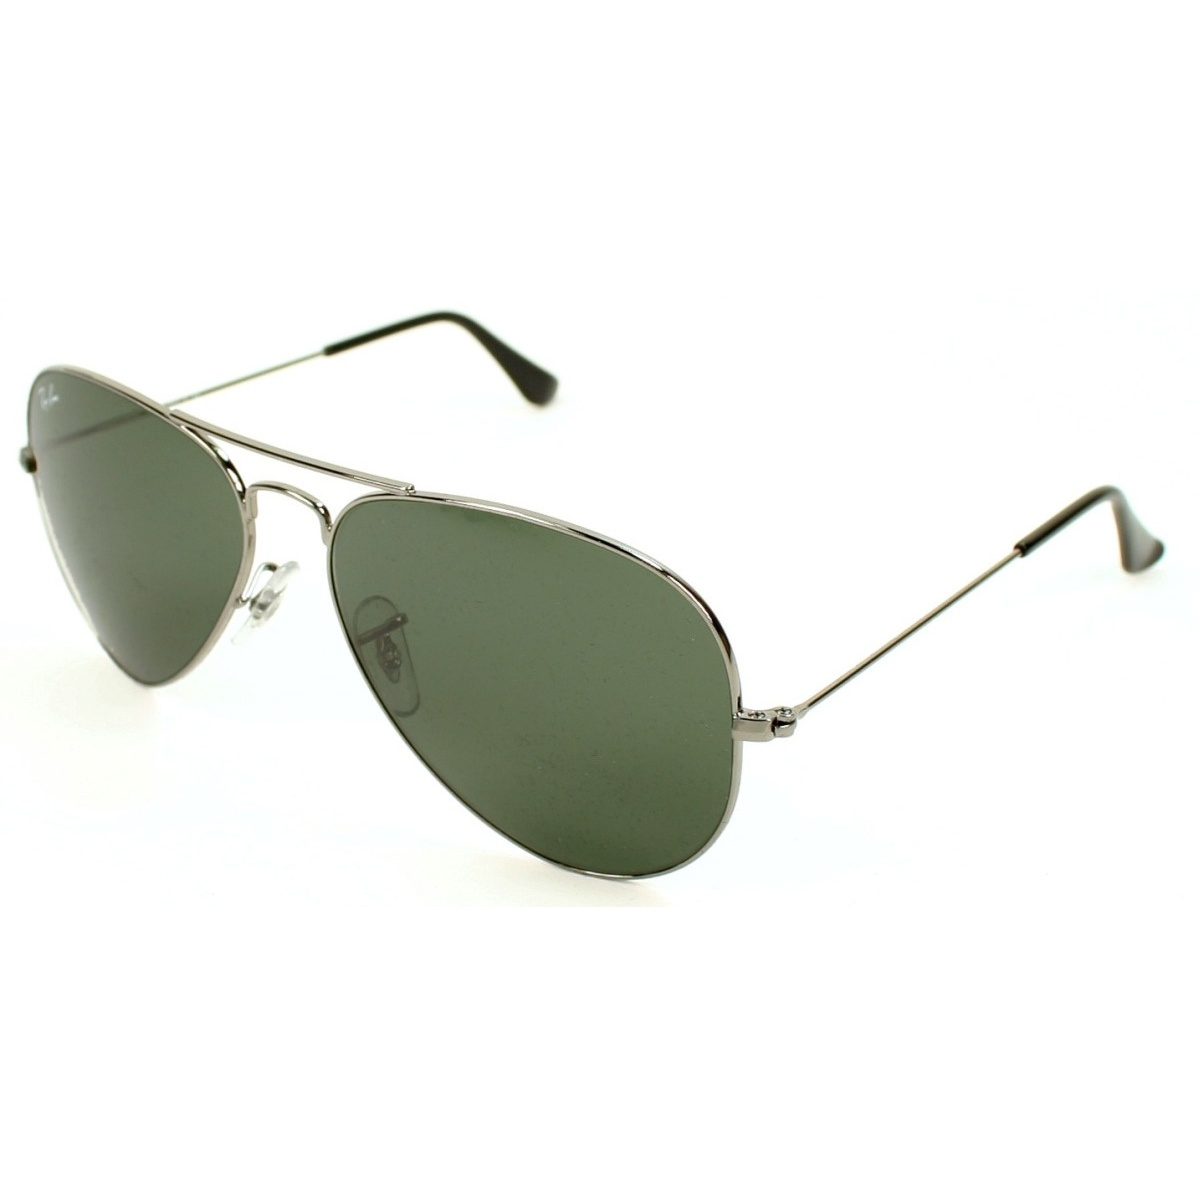 ray ban g15 aviator price  Rayban Aviator Sunglasses - Gunmetal Frame with 58mm G-15 Lens